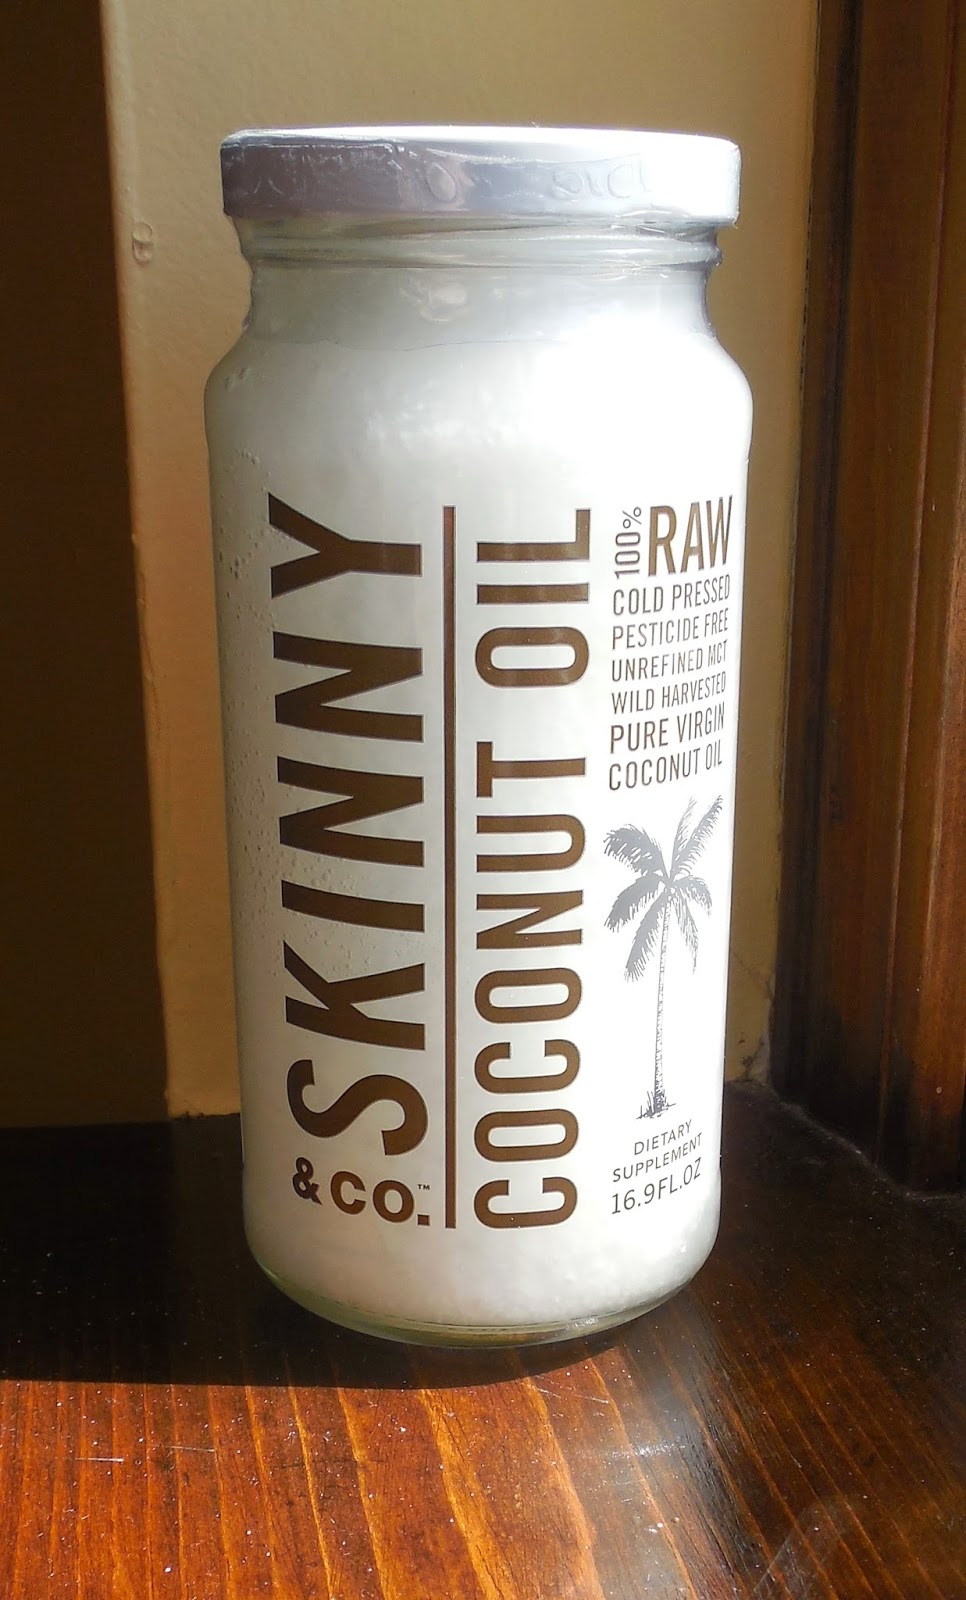 Skinny & Co Coconut Oil